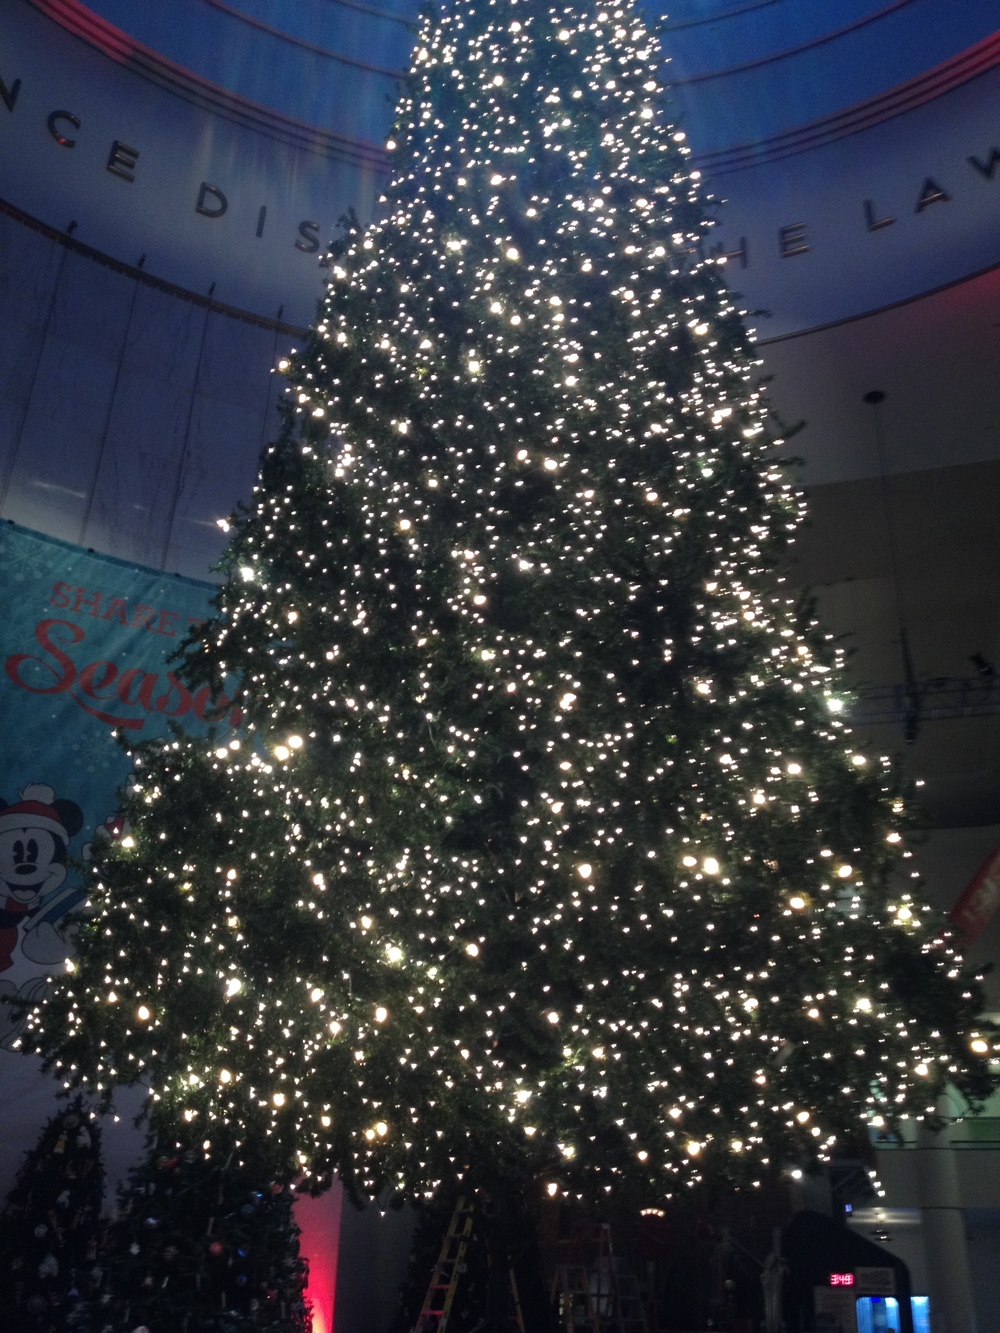 The Museum's tree took a cue from the Icelanders this year. Where we once decorated in all white, the museum used to go overboard in color. We still have our white lights. The museum got classy this year.